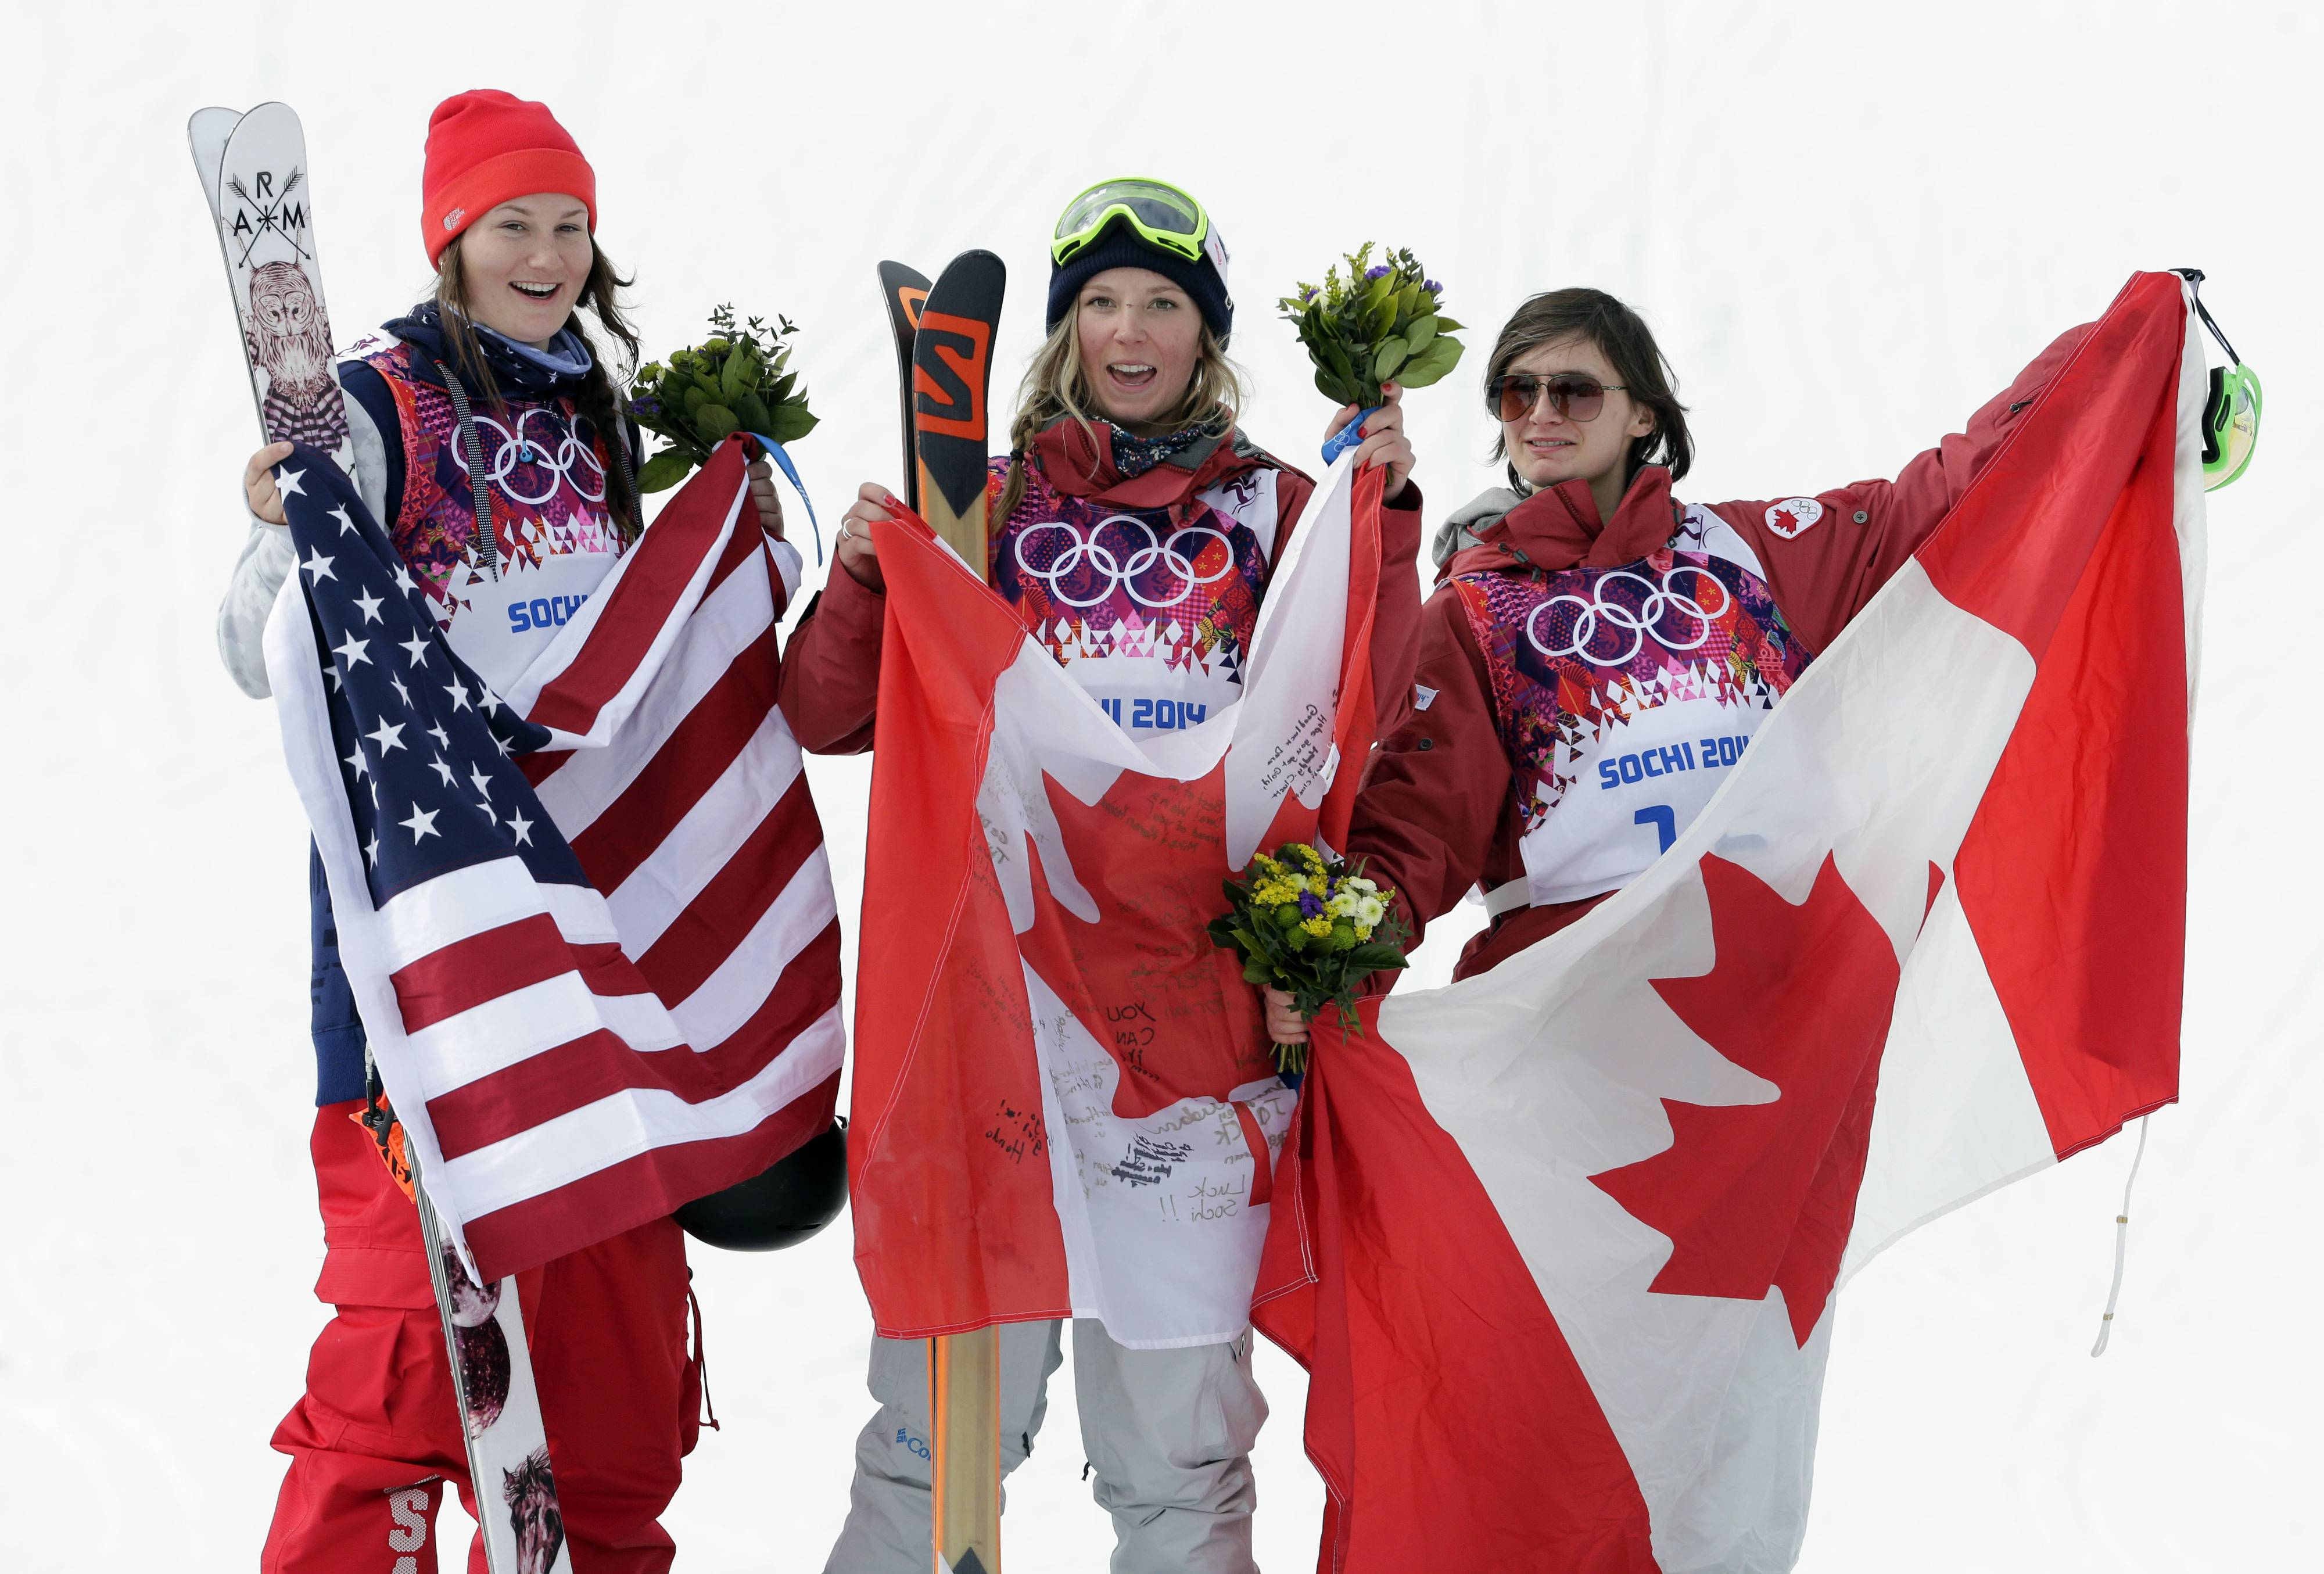 Canada's Dara Howell, center, celebrates on the podium with silver medalist Devin Logan of the United States, left, and Kim Lamarre, right, also of Canada, after Howell took the gold medal in the women's freestyle skiing slopestyle final at the Rosa Khutor Extreme Park at the 2014 Winter Olympics in Krasnaya Polyana, Russia.